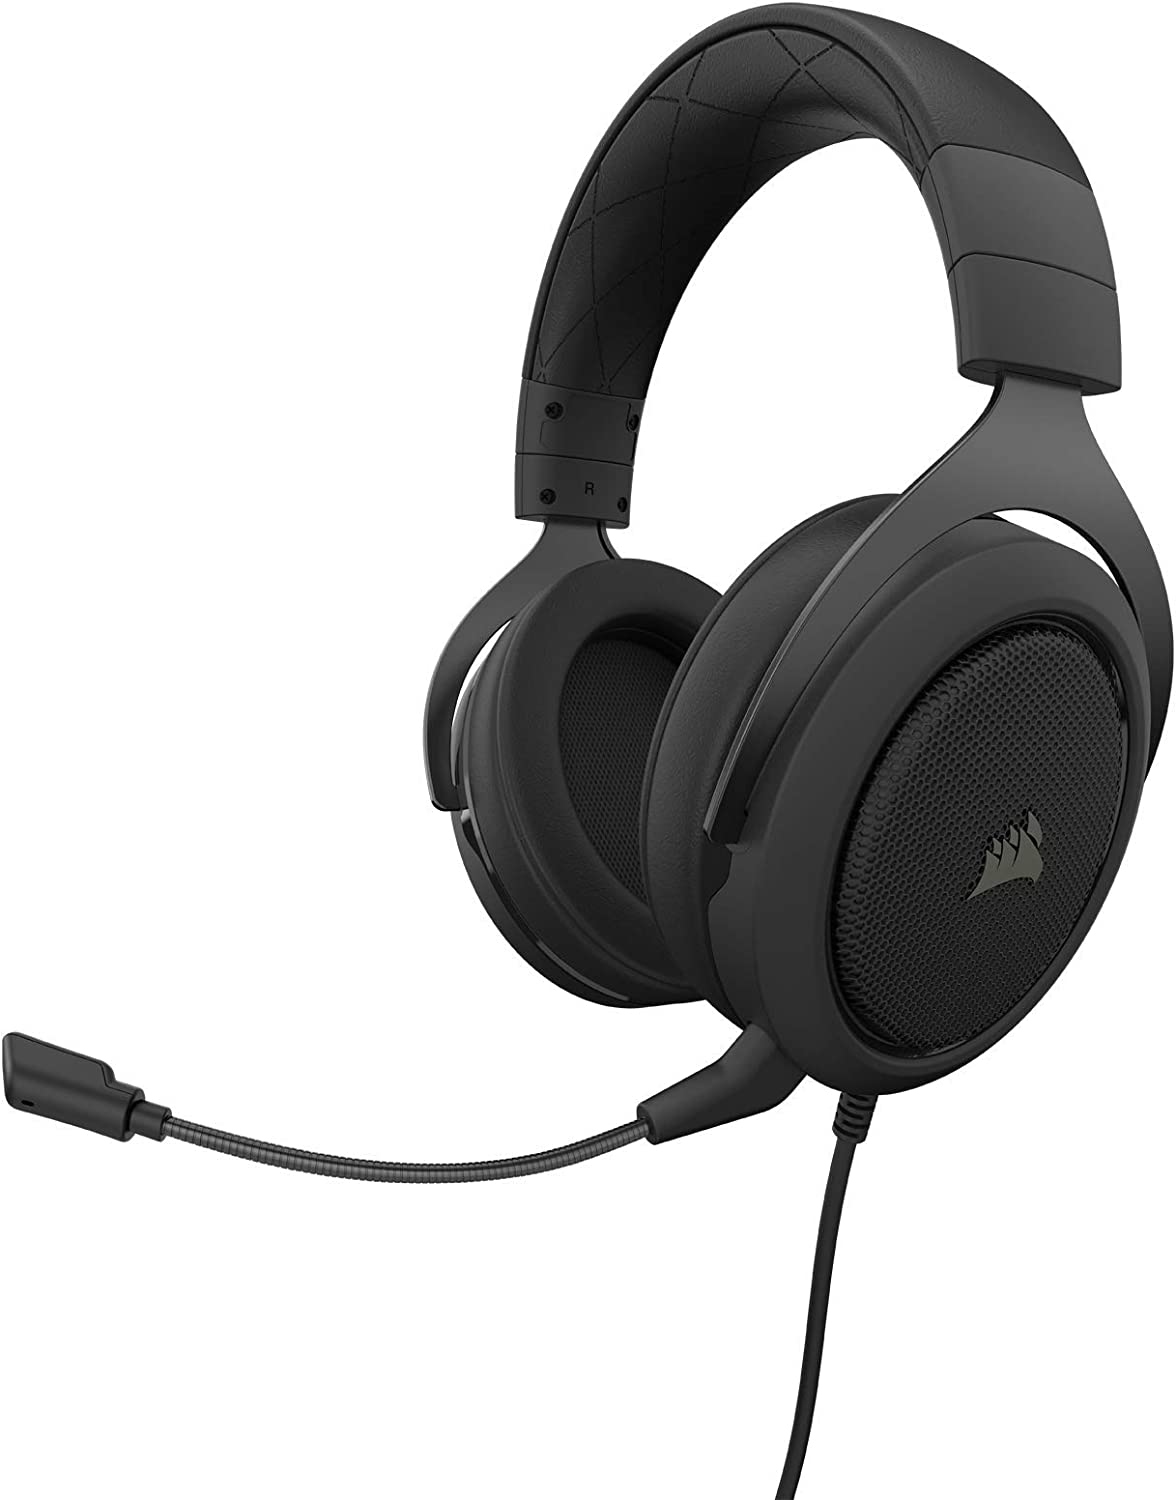 Corsair HS50 Pro - Stereo Gaming Headset - Discord Certified Headphones - Works with PC, Mac, Xbox One, PS4, Nintendo Switch, iOS and Android – Carbon